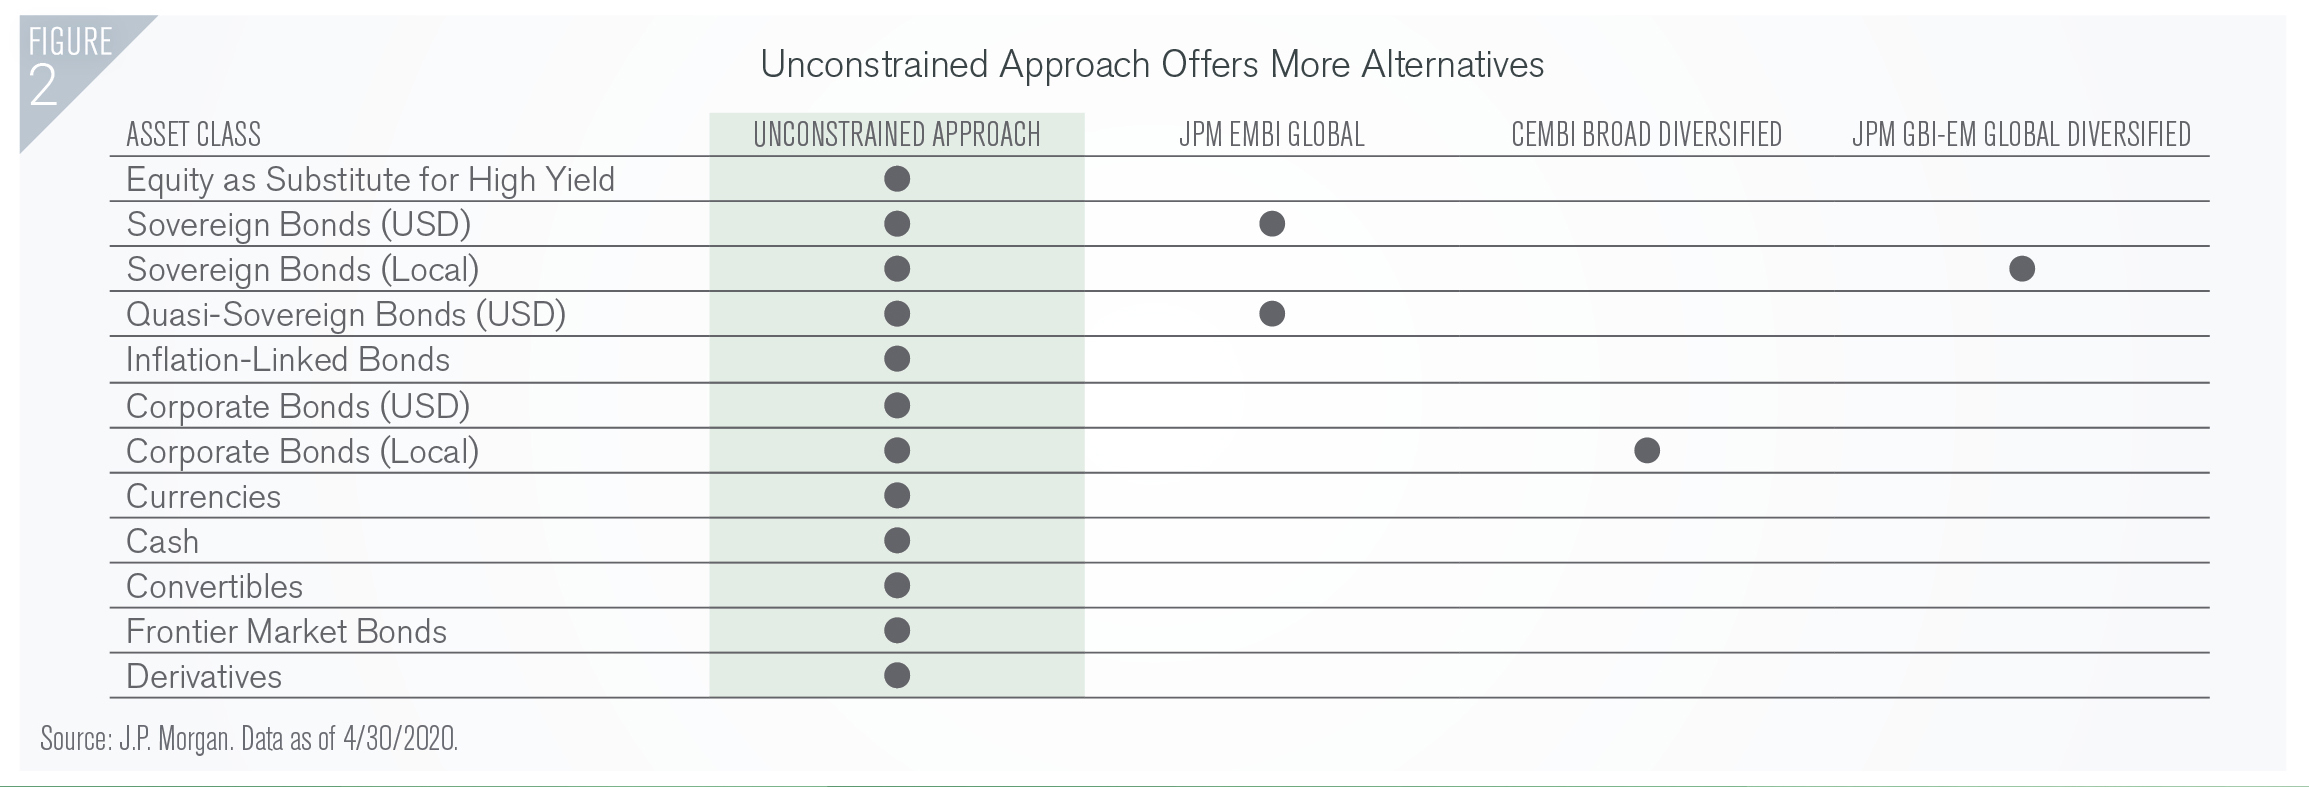 Figure 2 Unconstrained Approach Offers More Alternatives